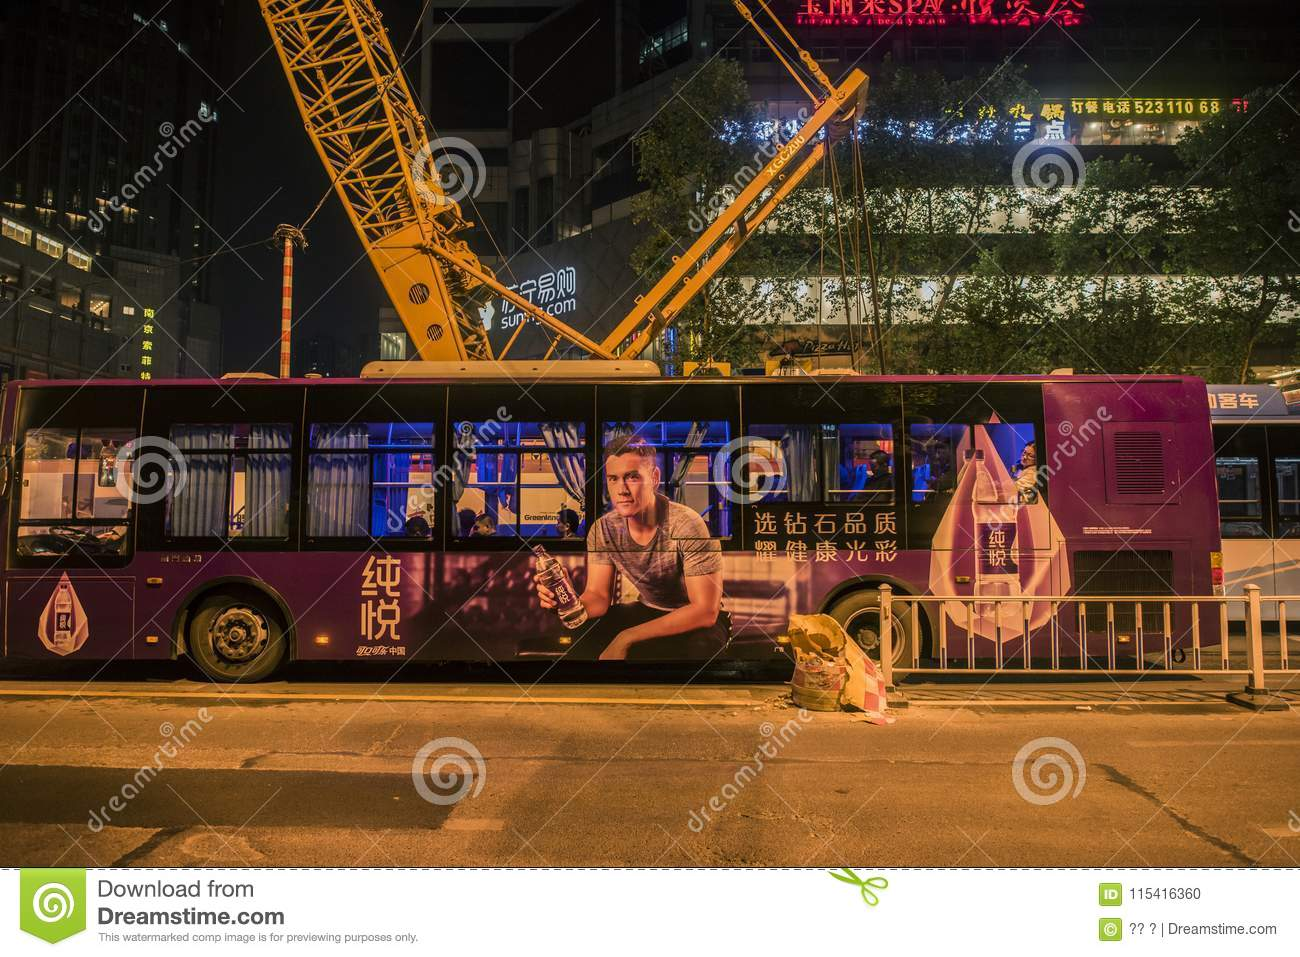 The roof of the bus seems to have a huge steel bus installed, the night view